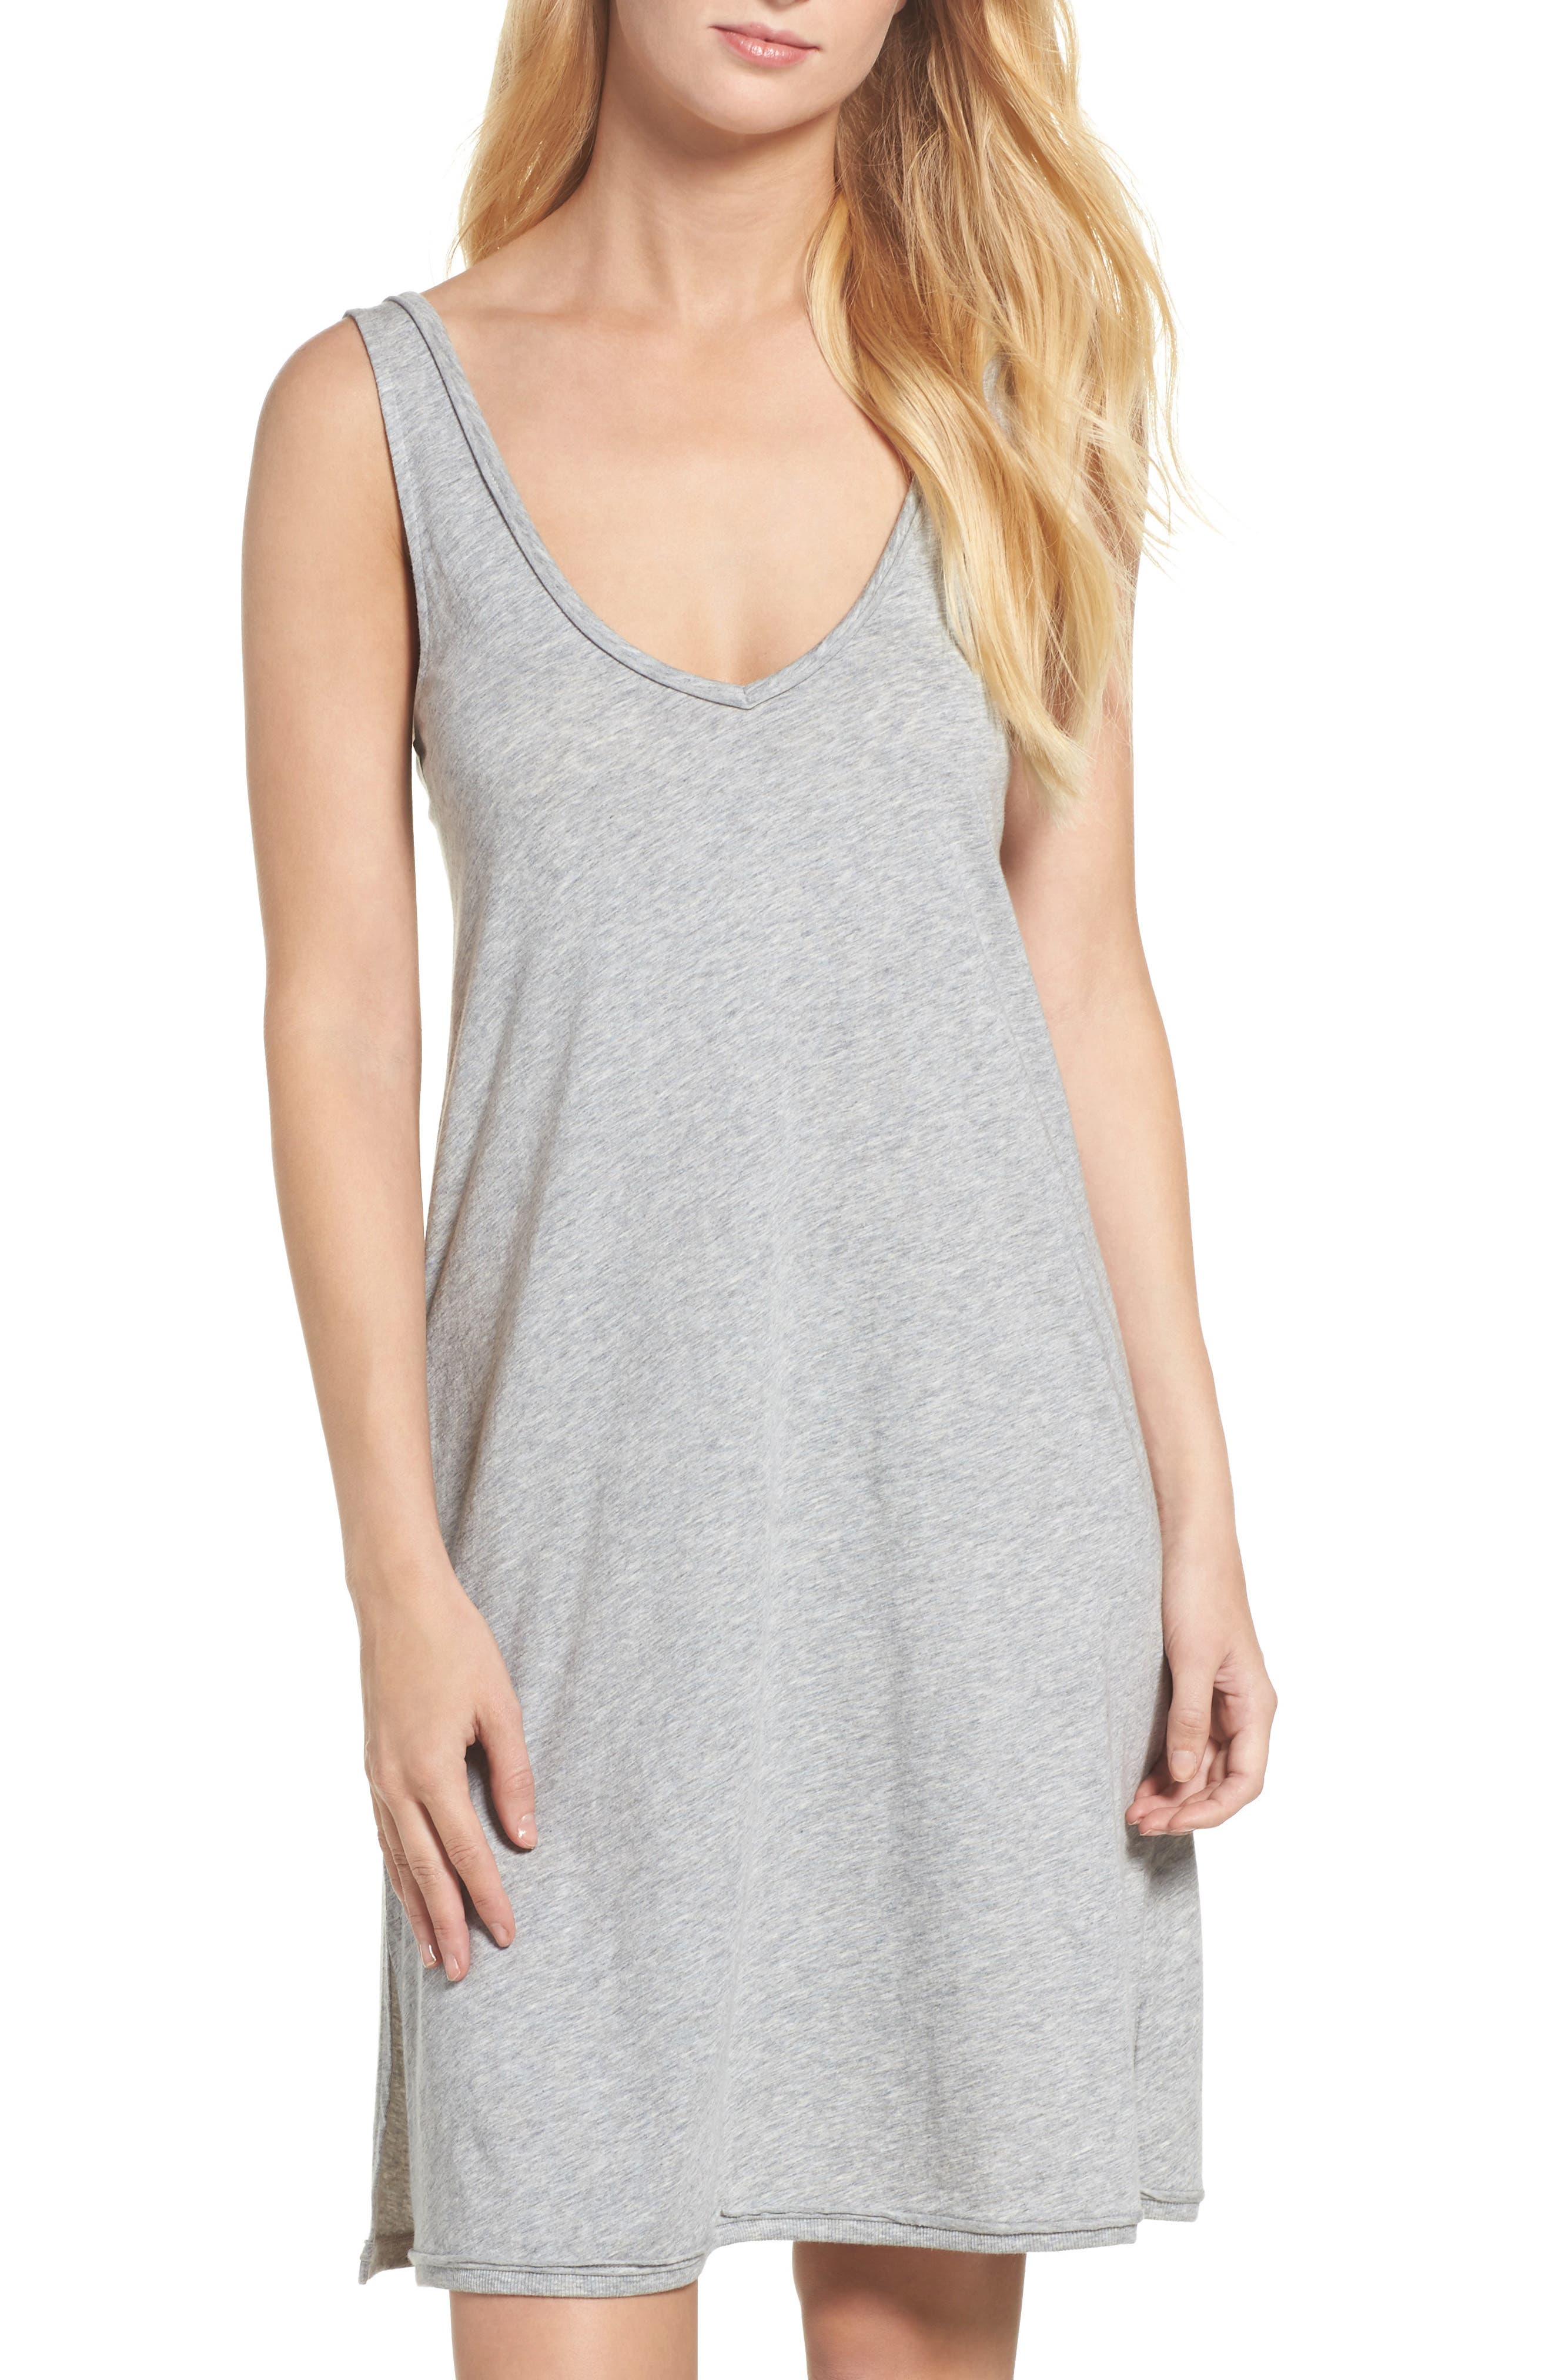 Cotton Chemise,                             Main thumbnail 1, color,                             020